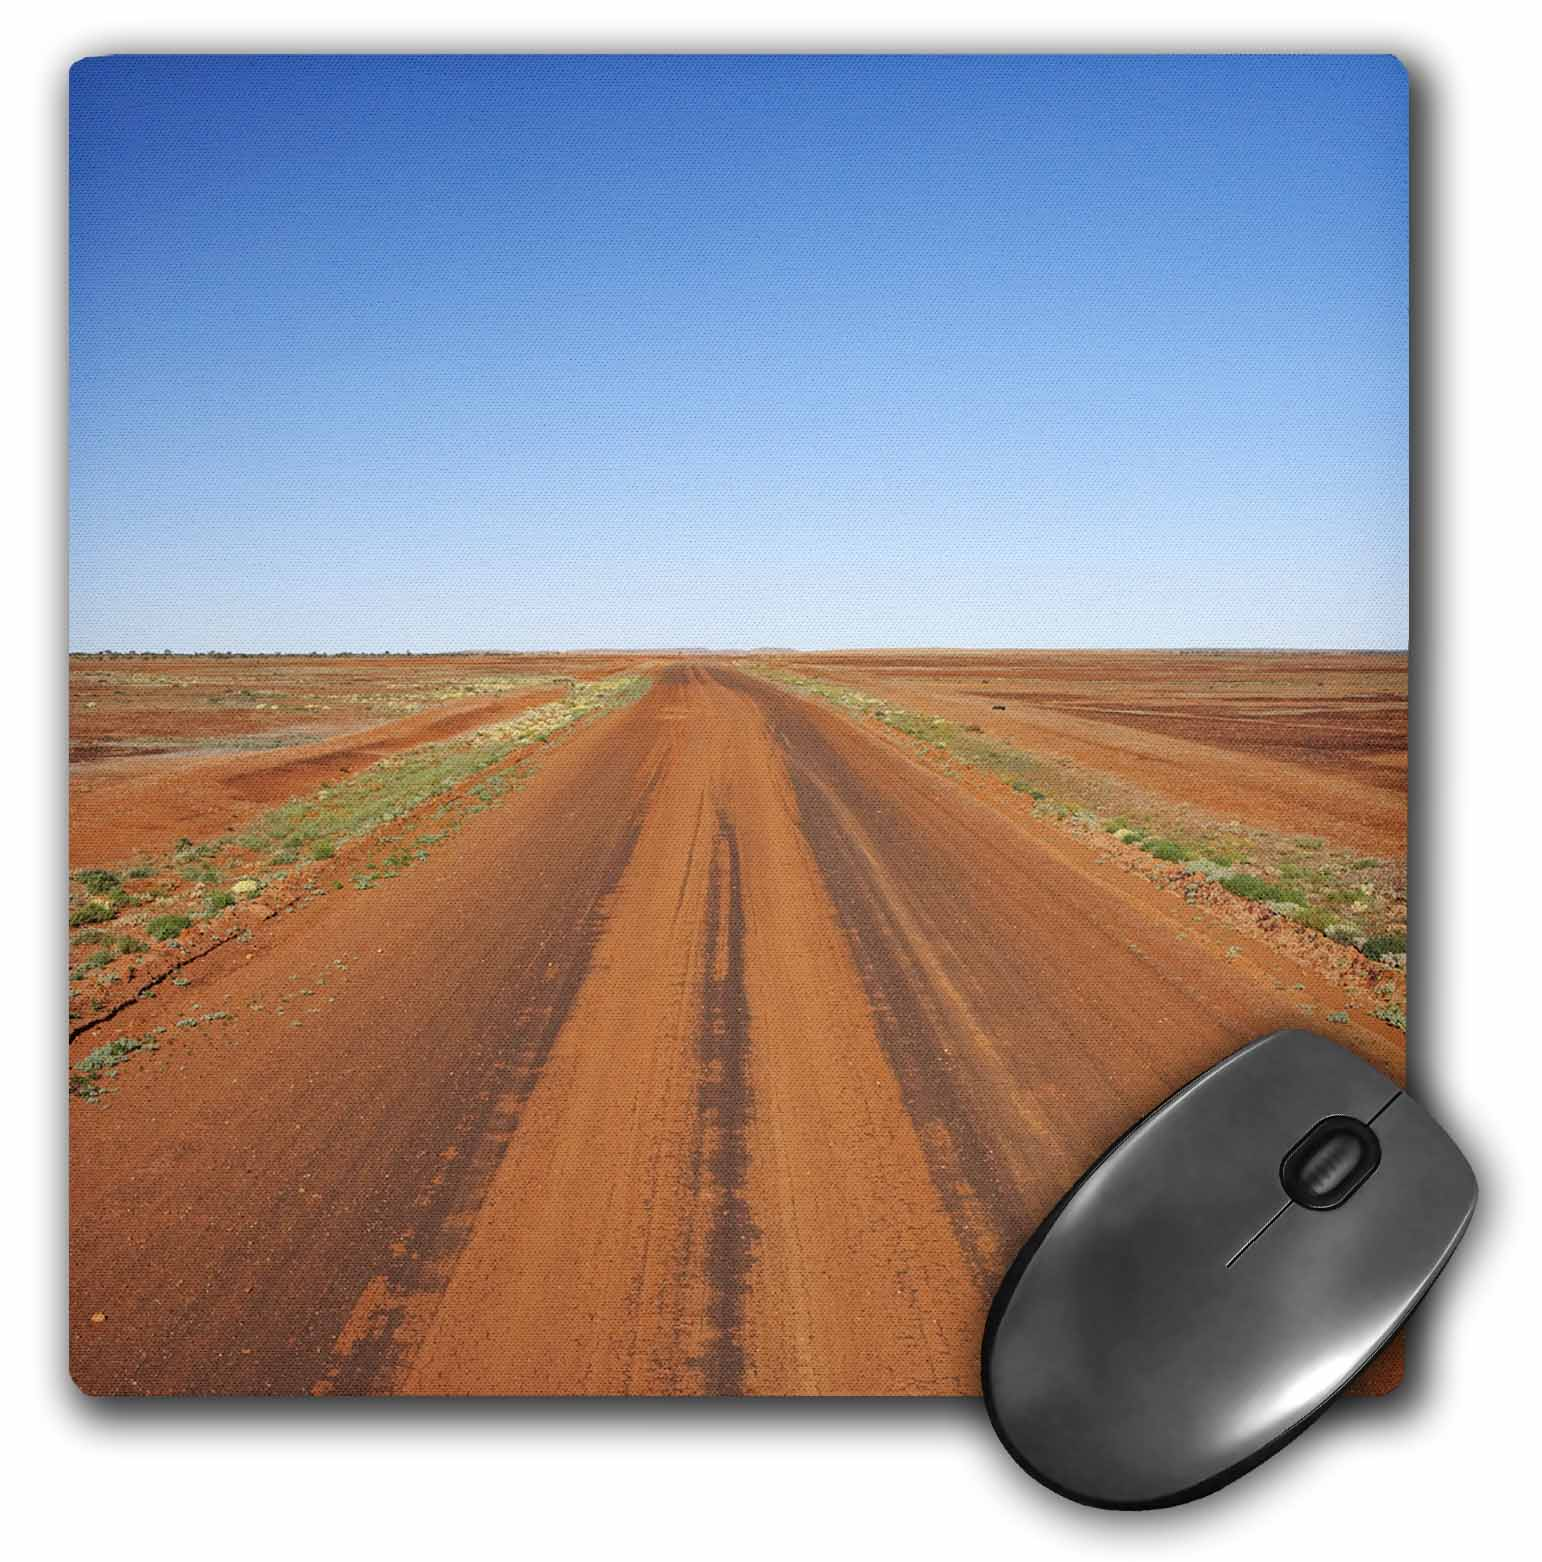 3dRose Outback Road, Sturt NP, New South Wales, Australia-AU01 DWA2250 - David Wall, Mouse Pad, 8 by 8 inches